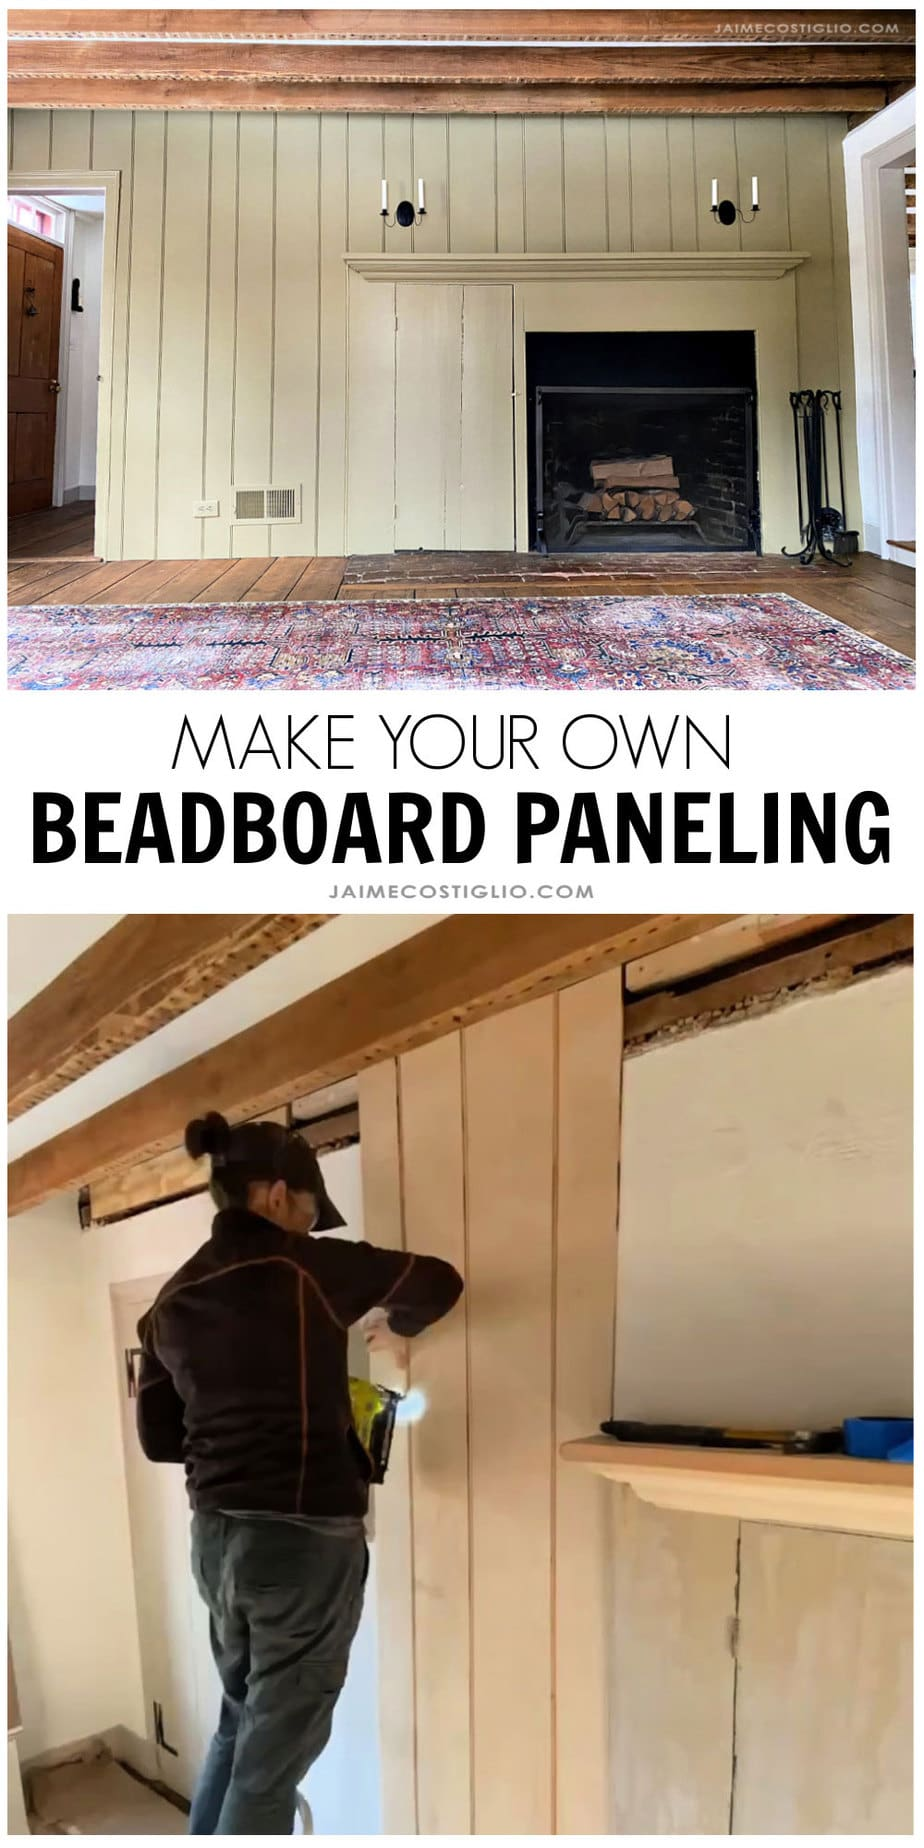 make your own beadboard paneling